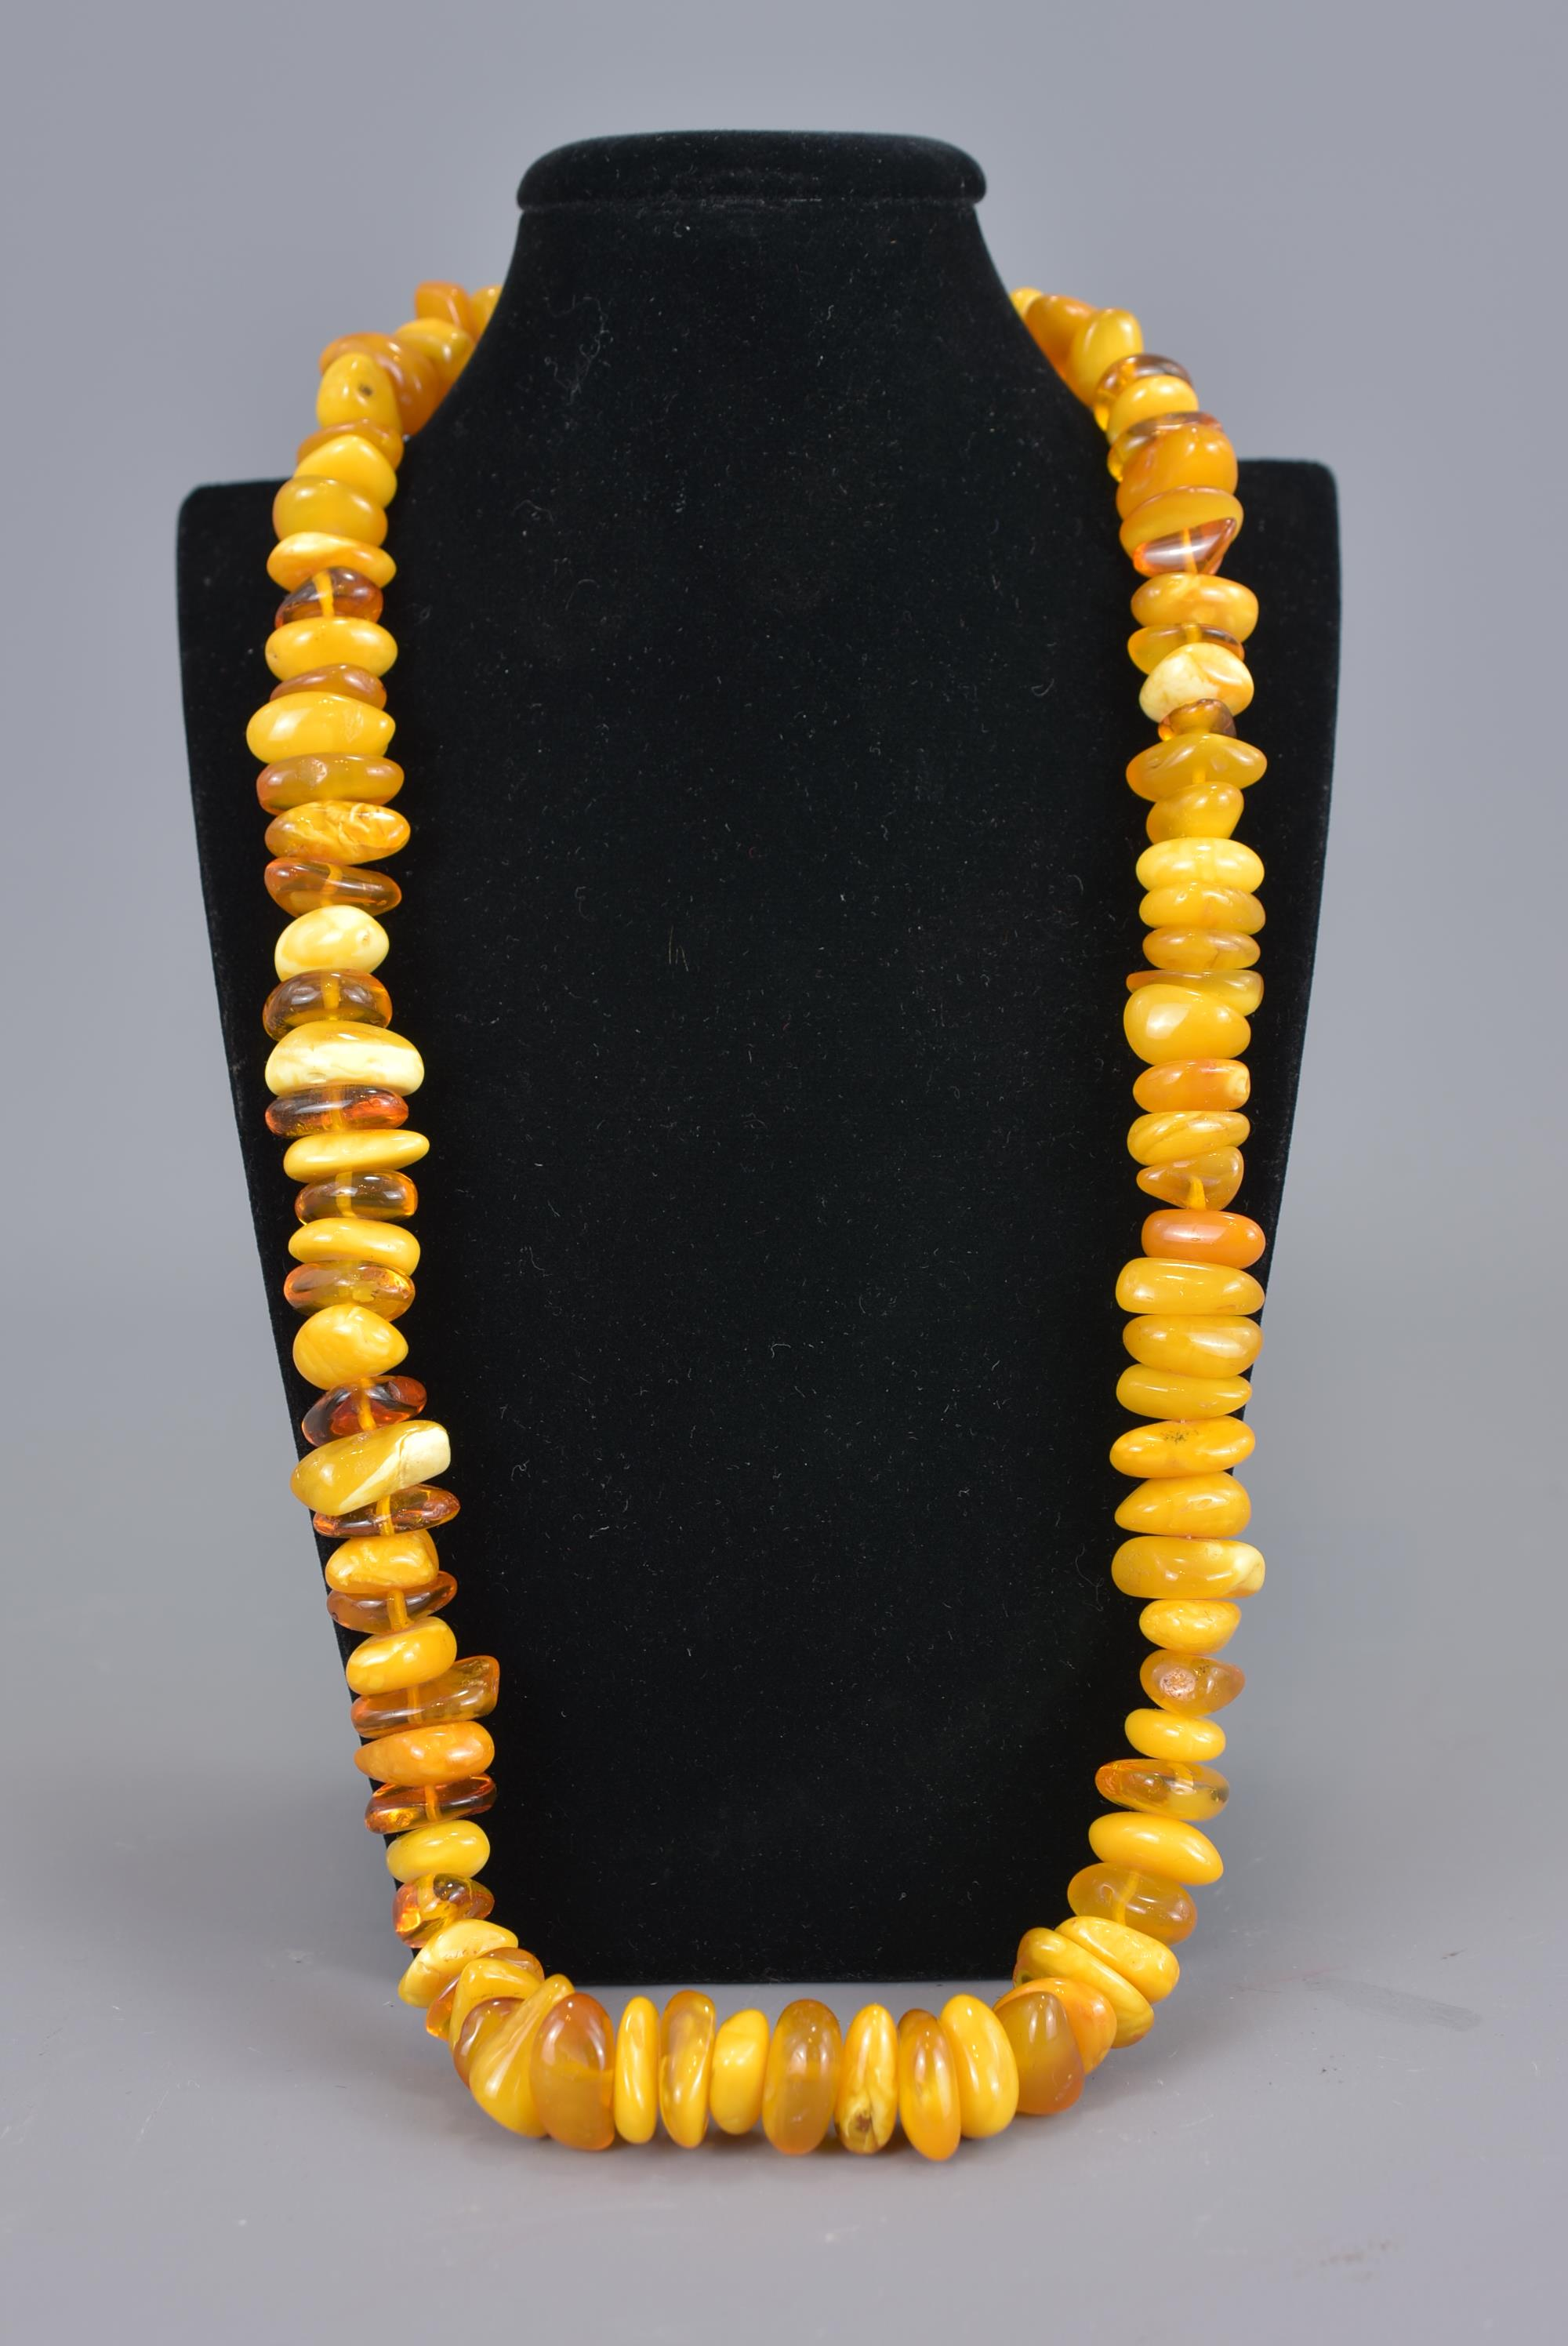 Lot 60 - A string of Baltic amber beads in a necklace.